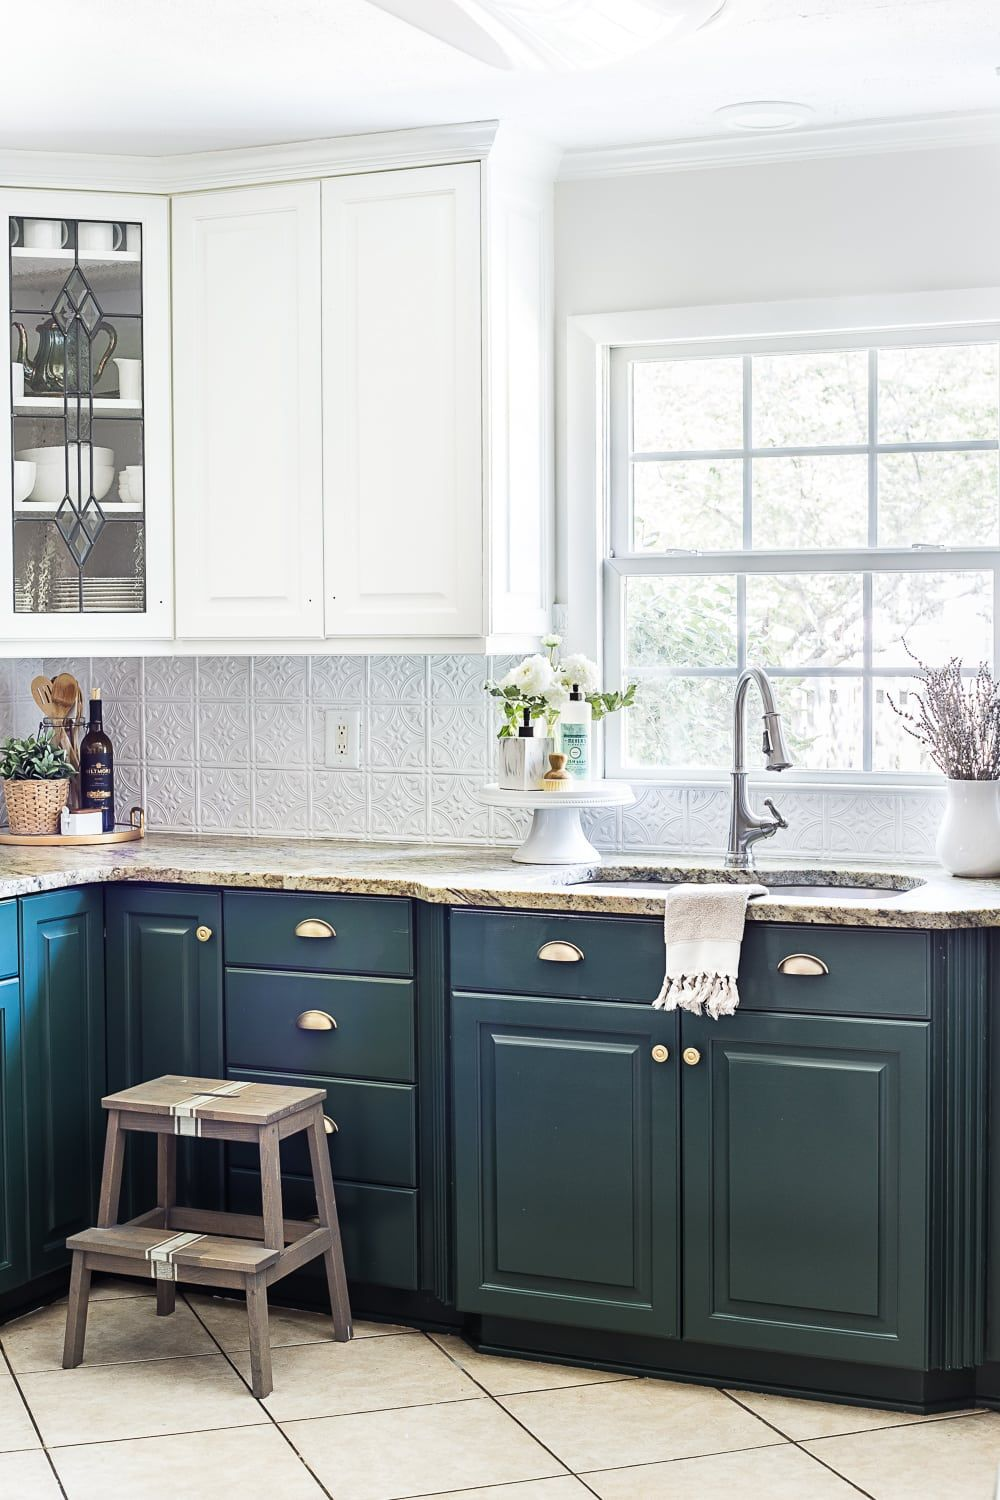 How To Update Kitchen Cabinets Green Kitchen Cabinet Update Kitchen Pinterest Green Kitchen